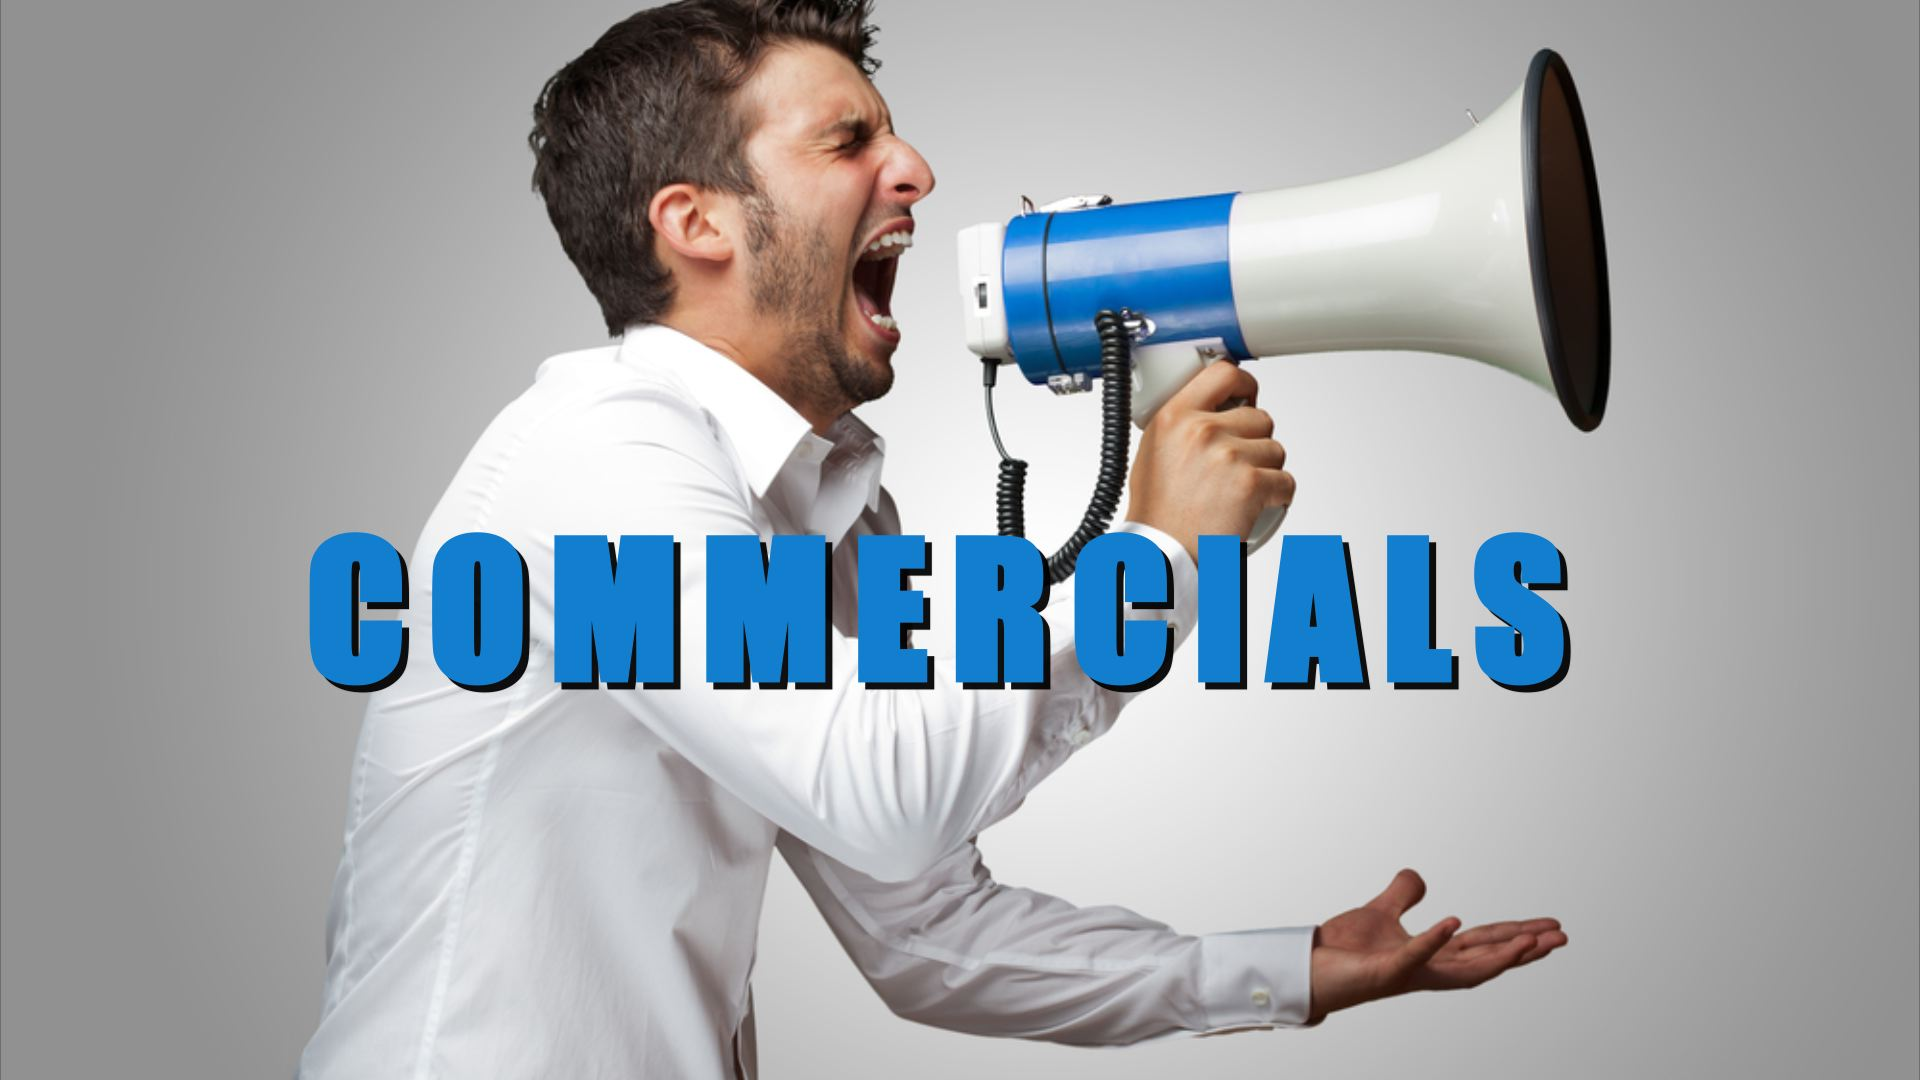 Commercials